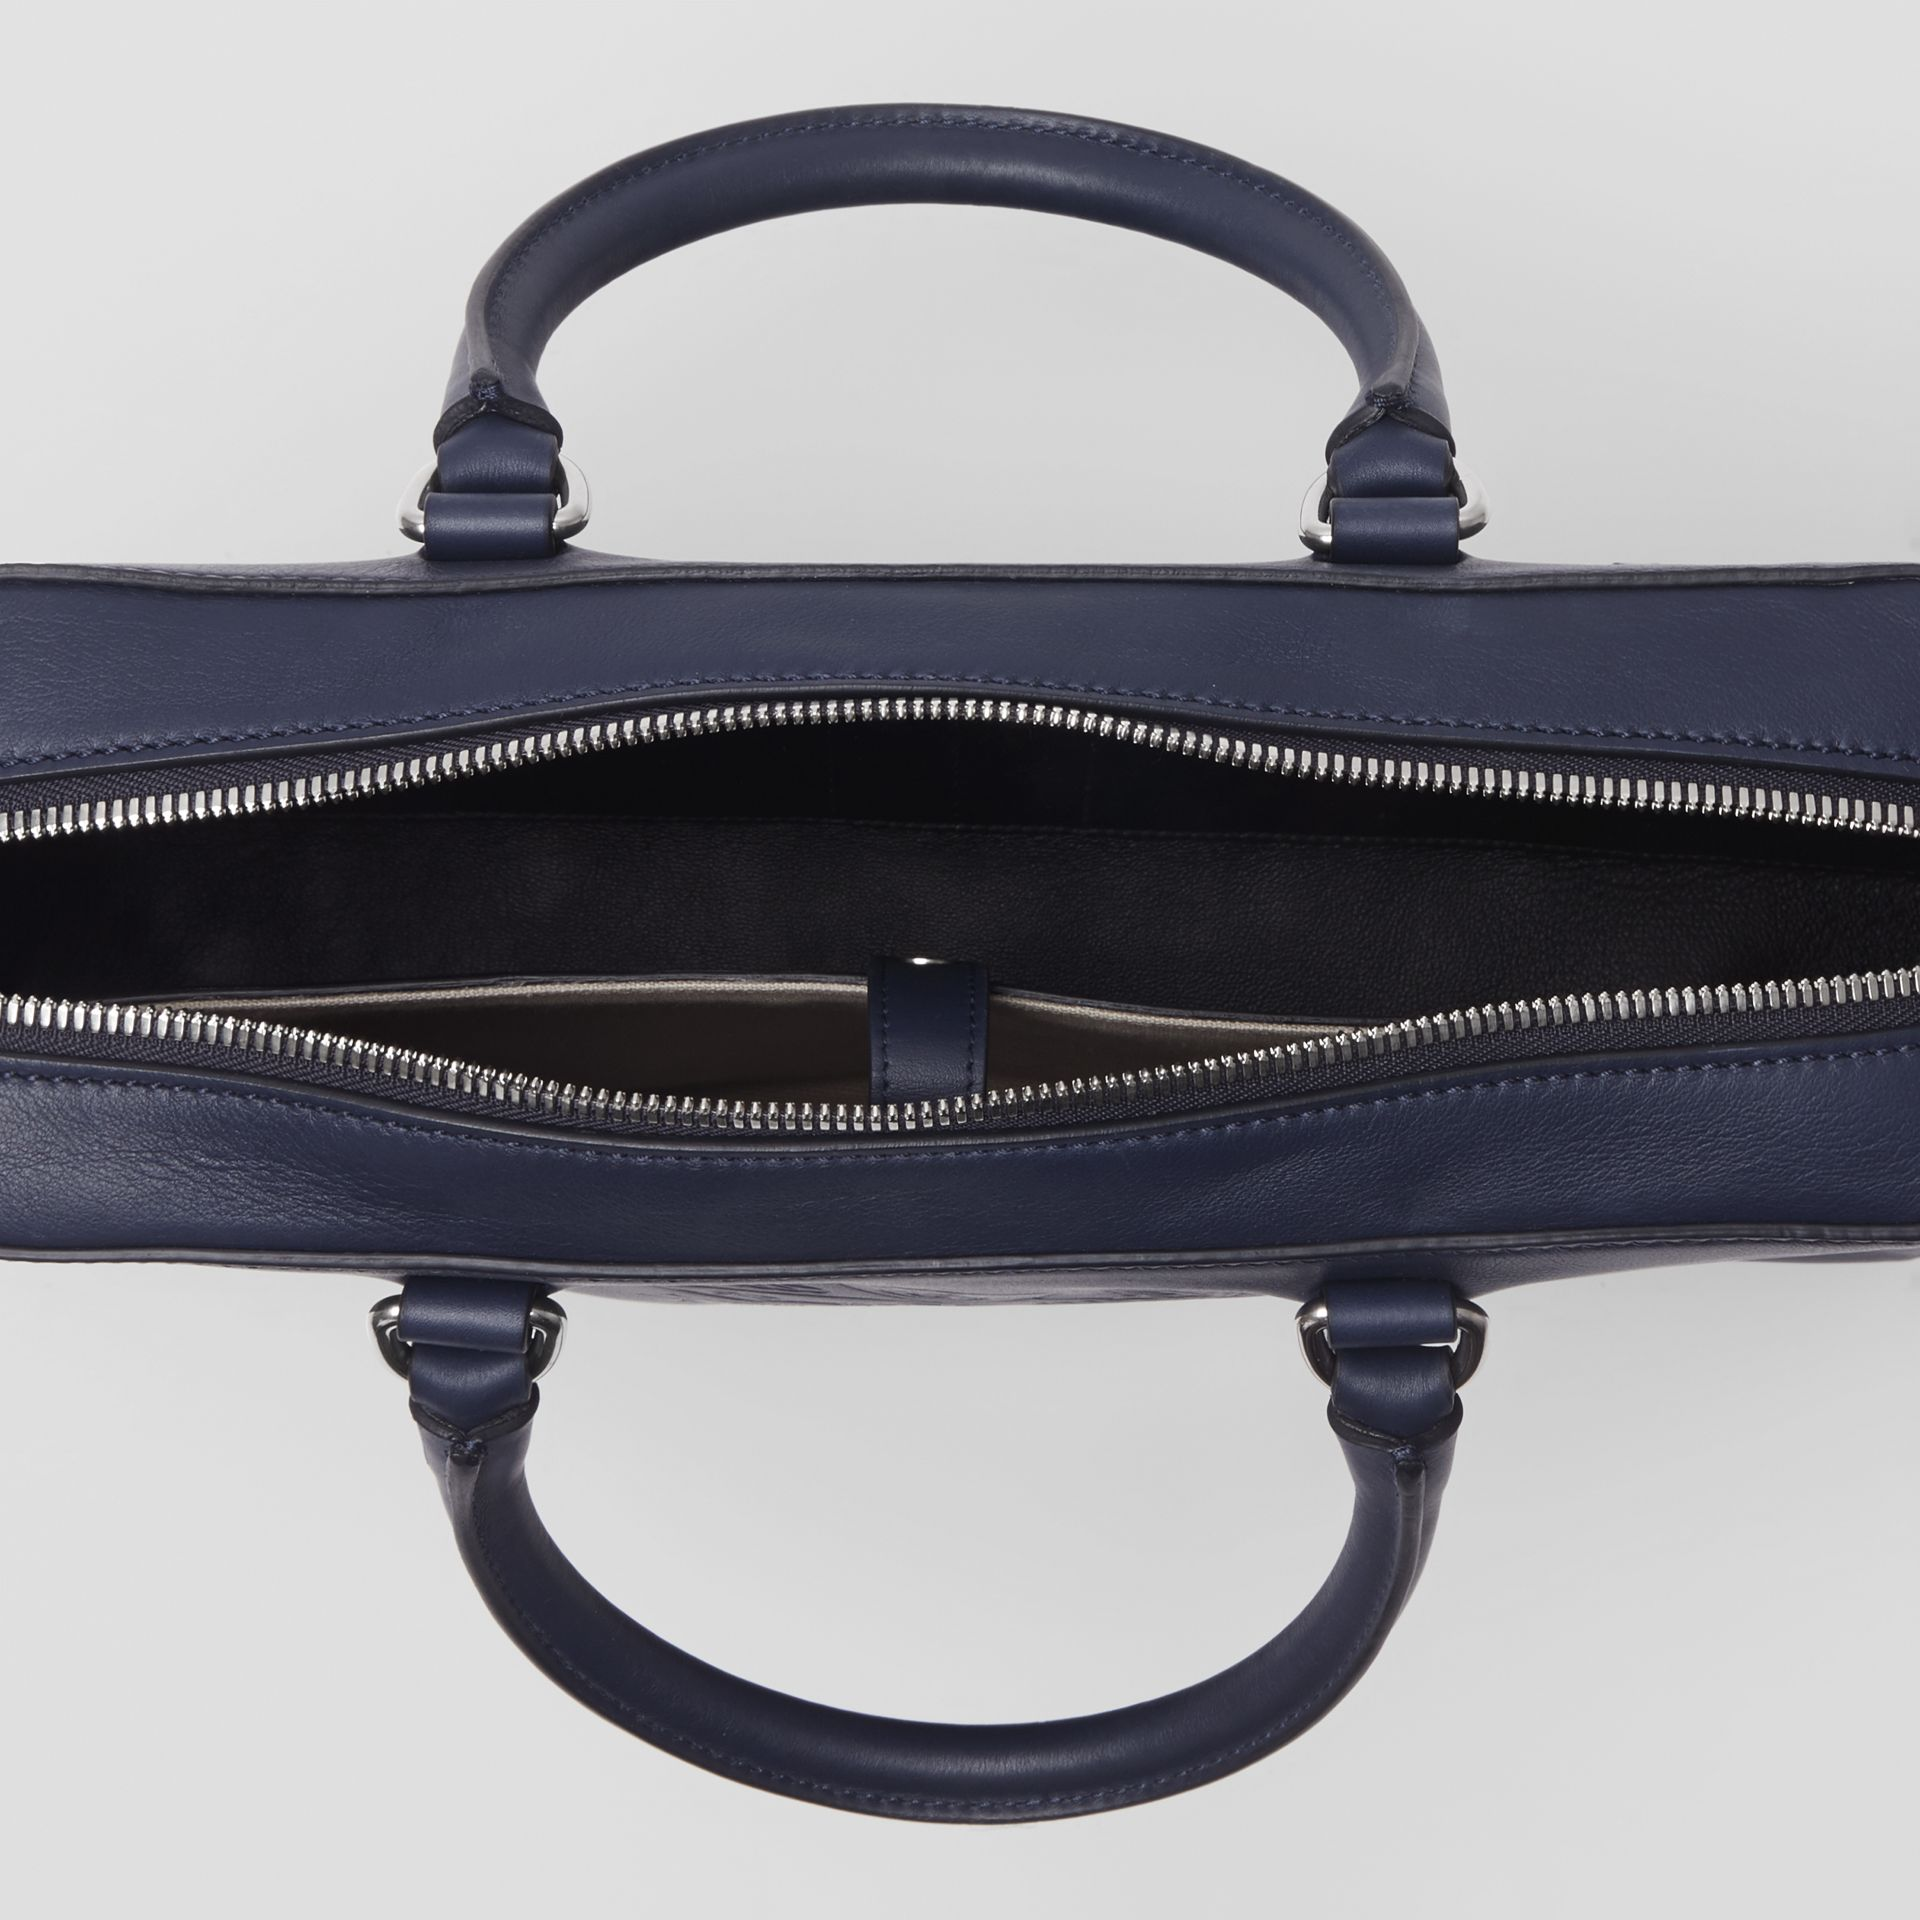 Attaché-case en cuir avec écusson estampé (Bleu Régence) - Homme | Burberry - photo de la galerie 5